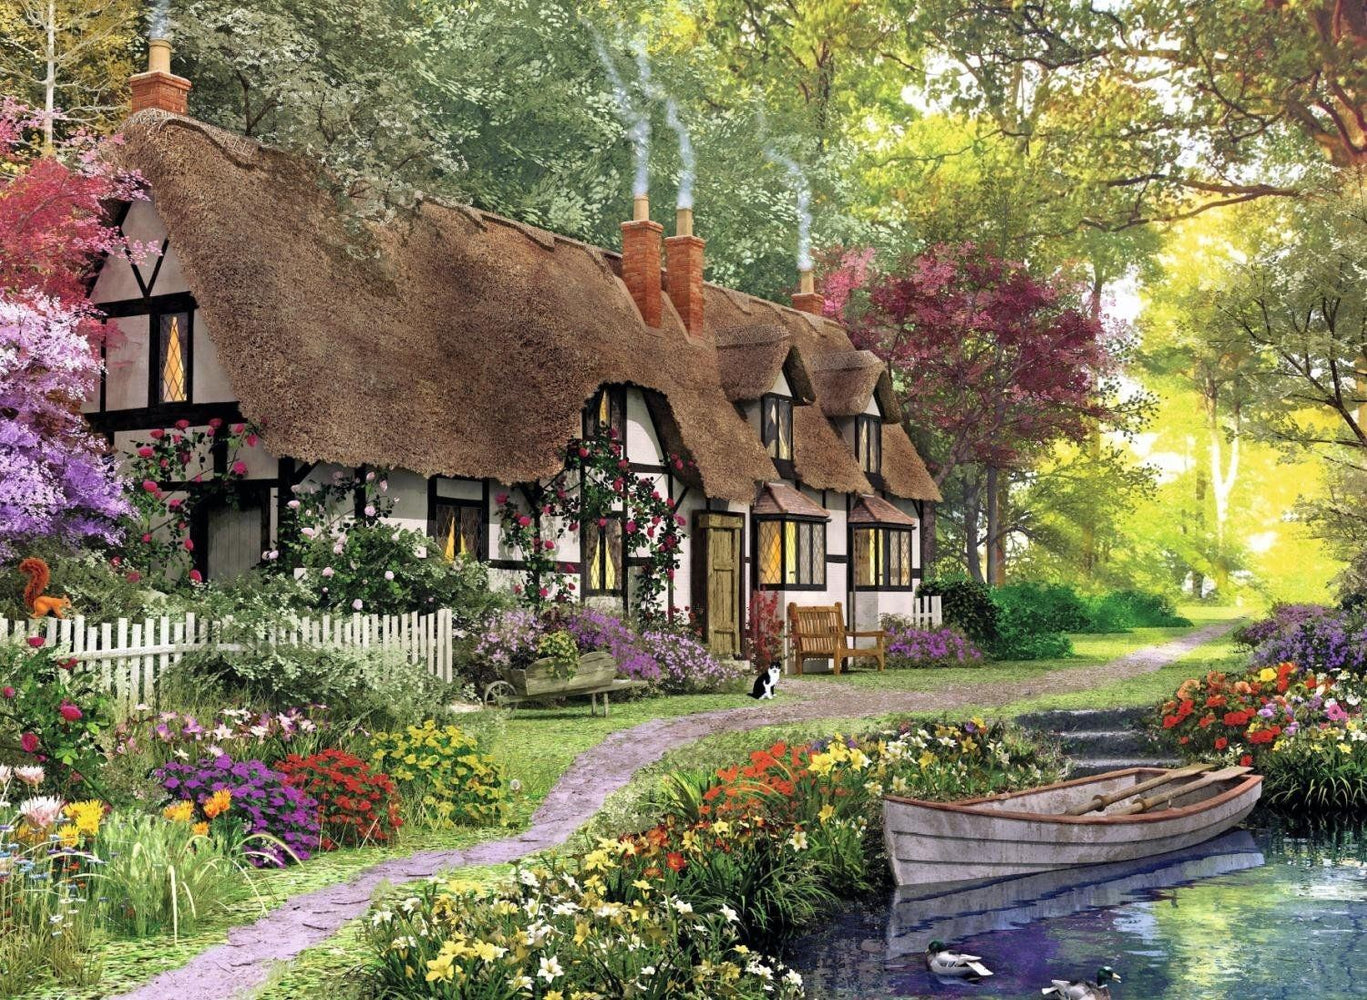 Carpenters Cottage 200 Piece XL Jigsaw Puzzle